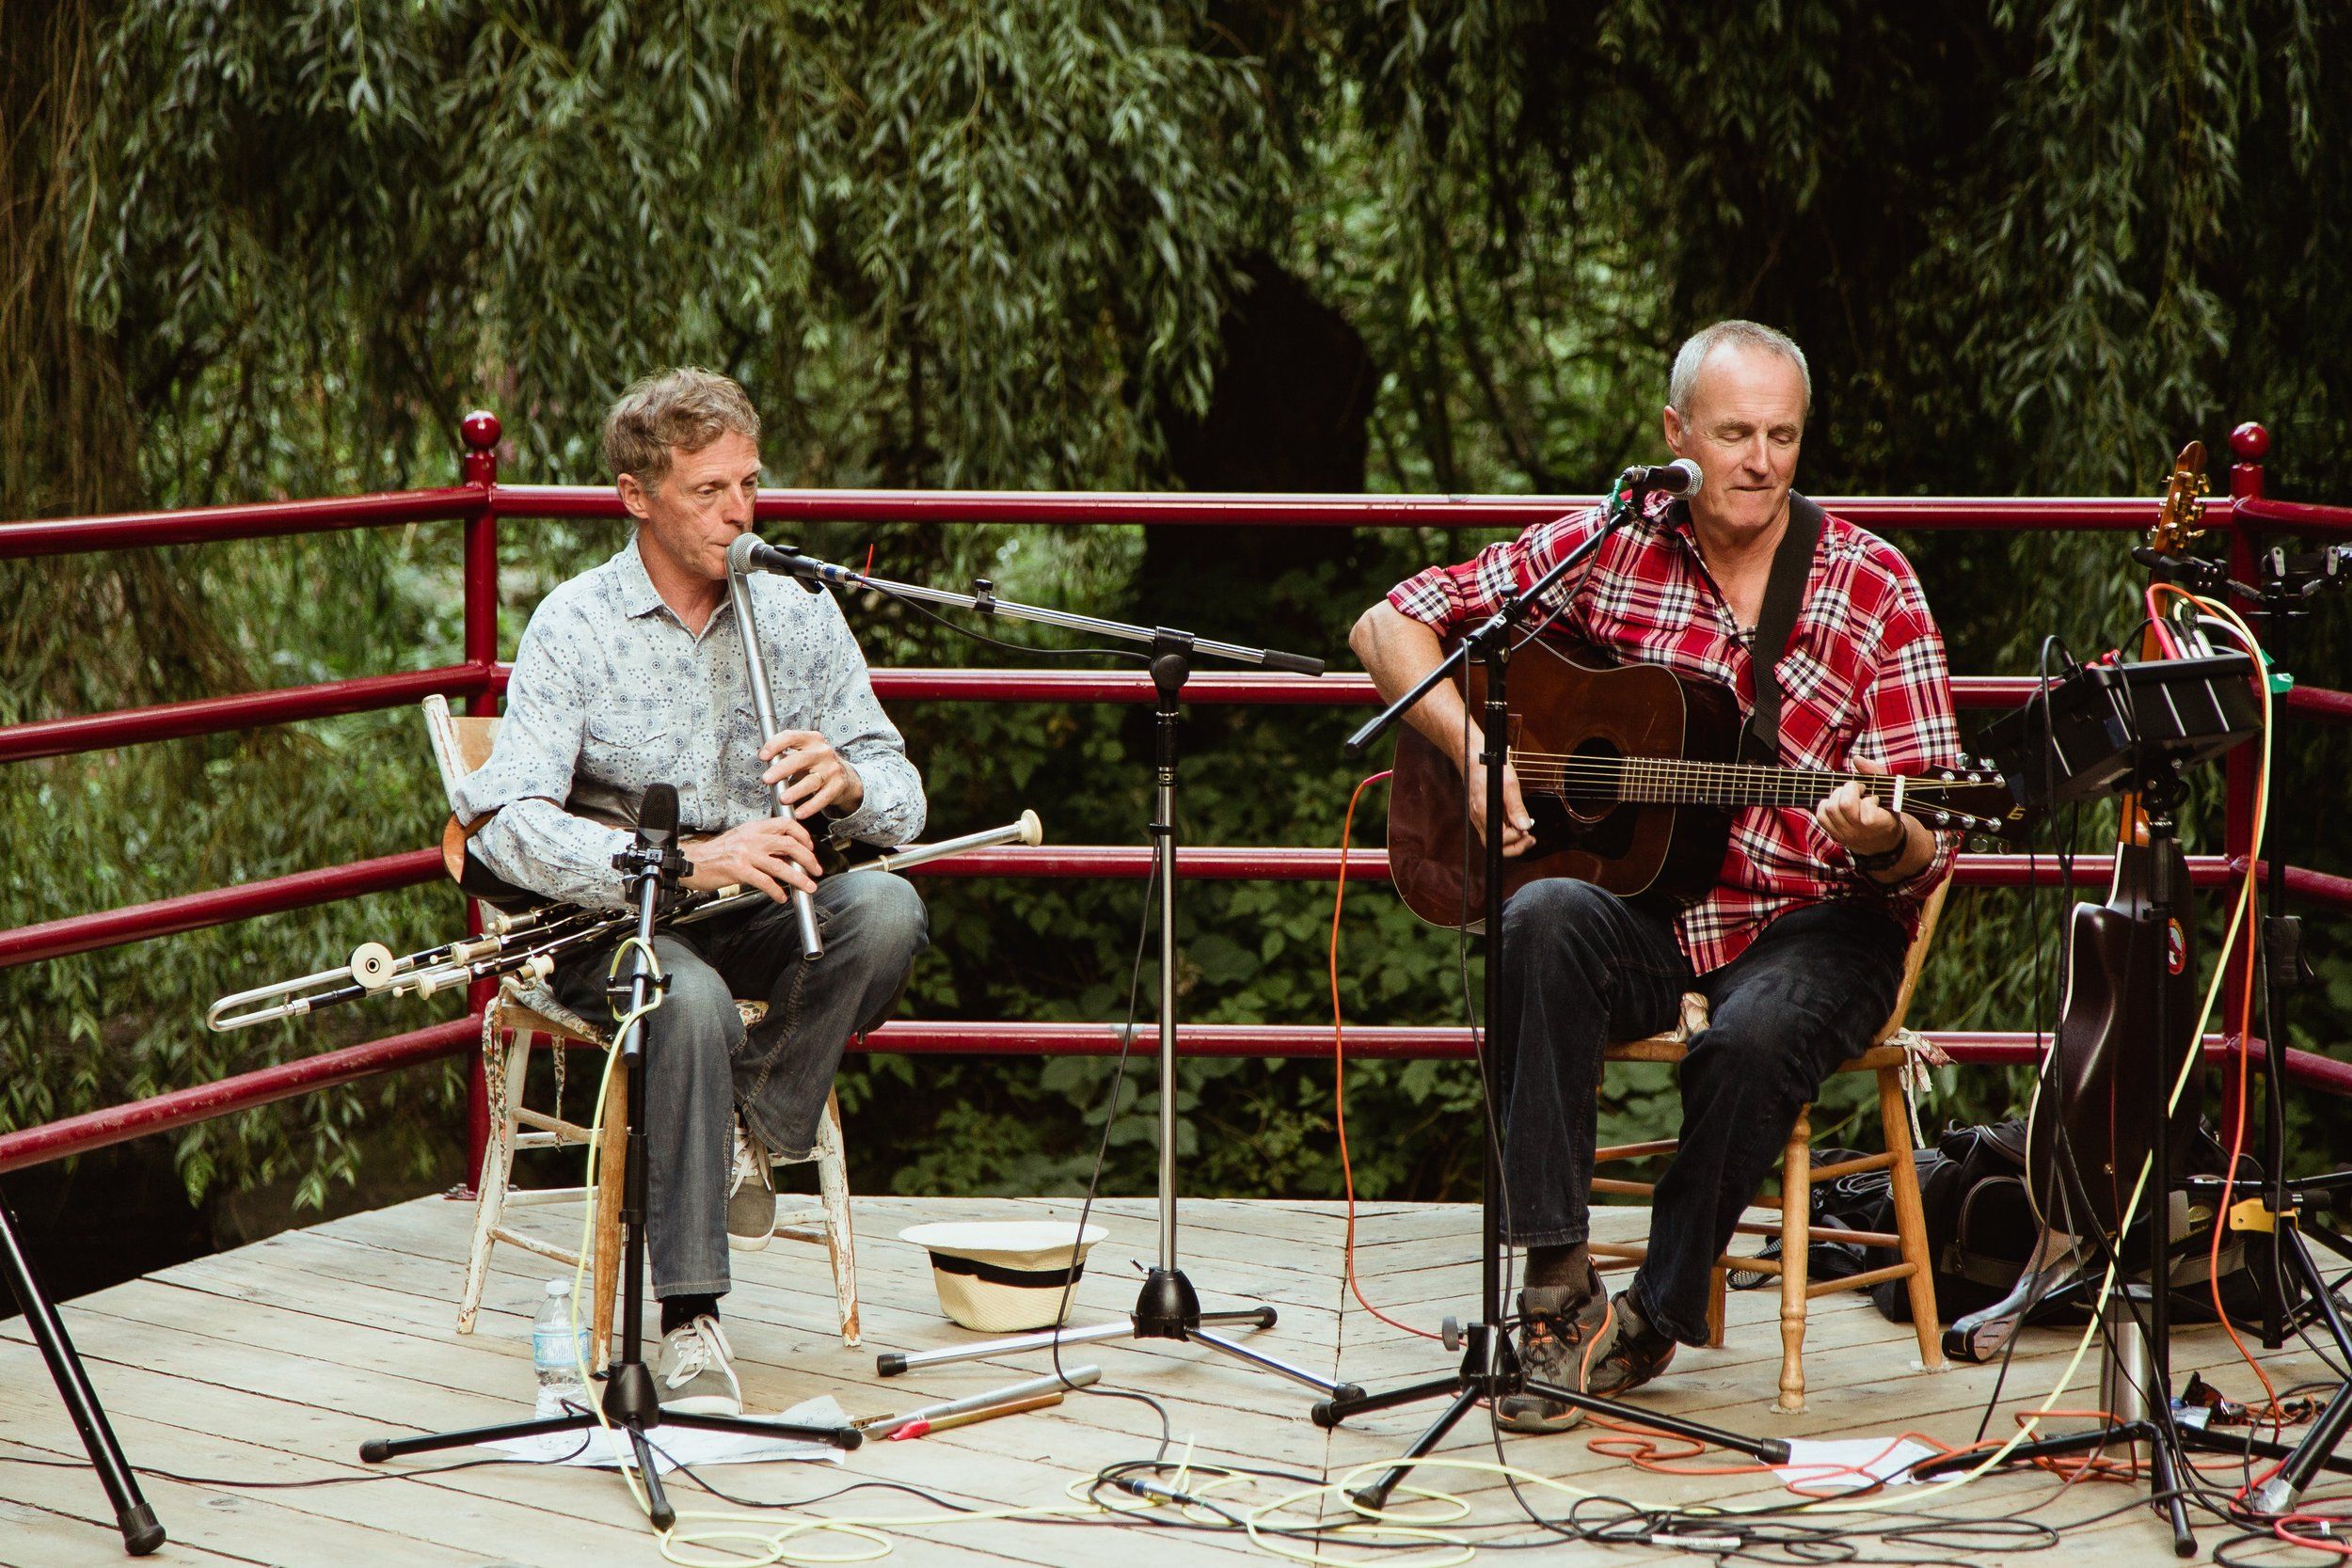 DUBLIN2 (Martin Nolan and Terry Boyle) performing at Bowen Park, Nanaimo.  Photo by  Ciarán Boyle .